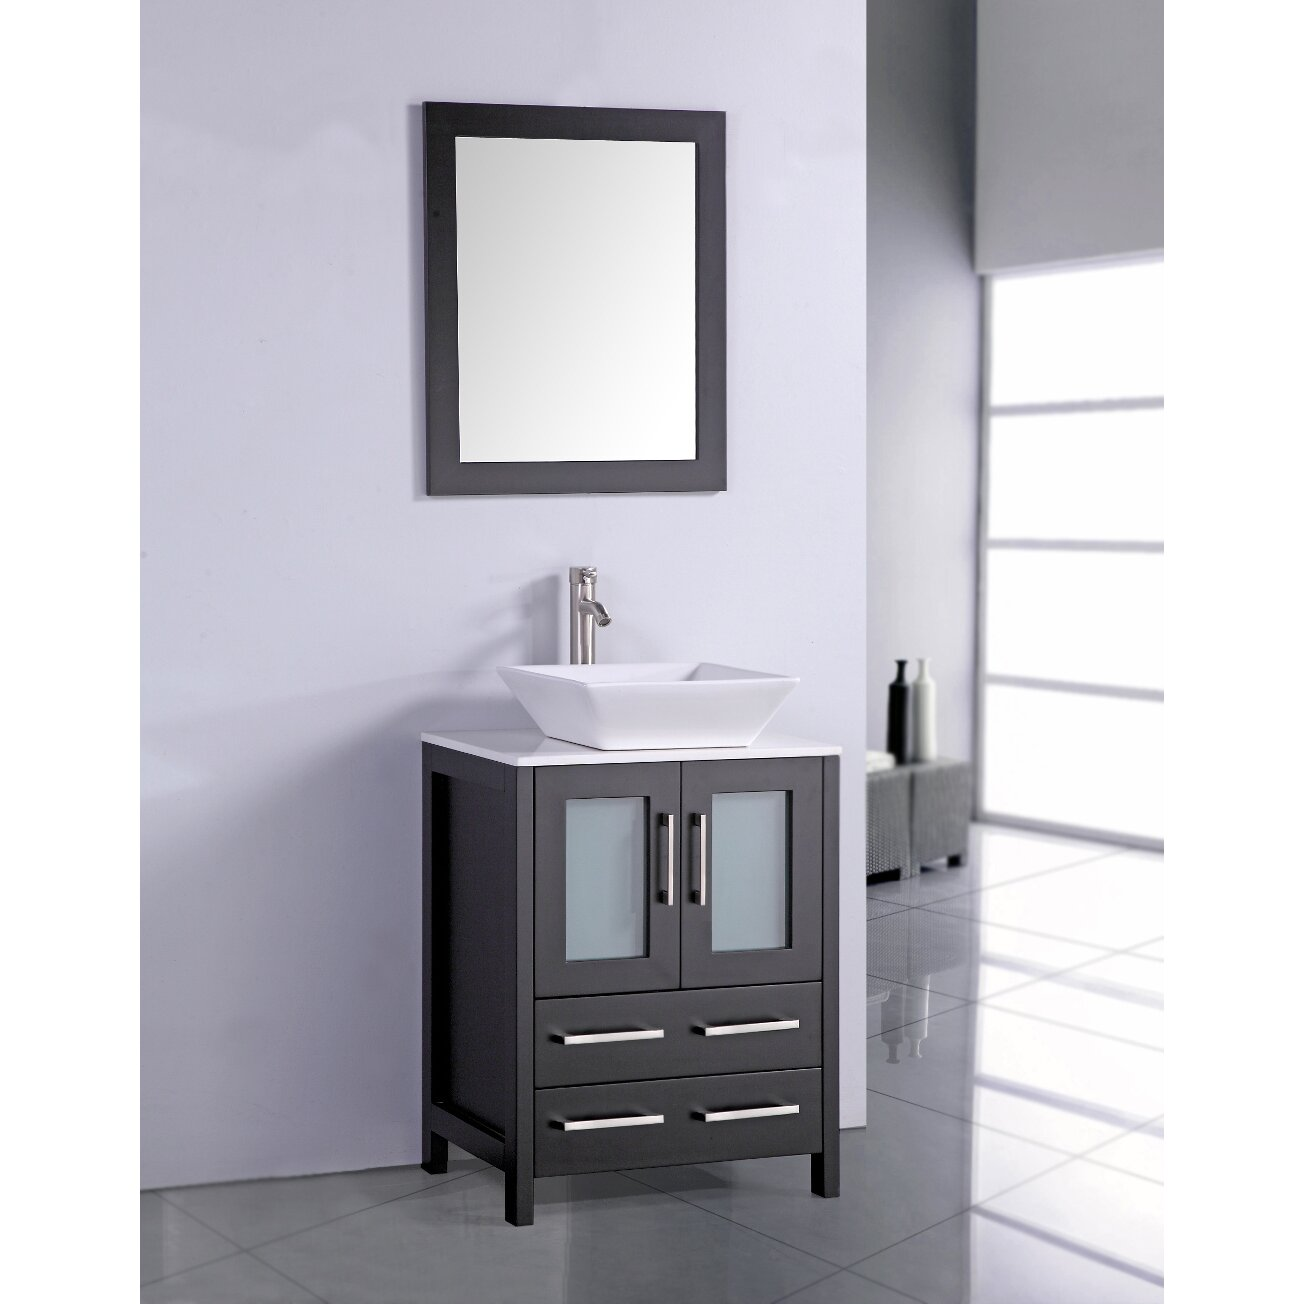 Legion furniture 24 single bathroom vanity set with for Bath and vanity set